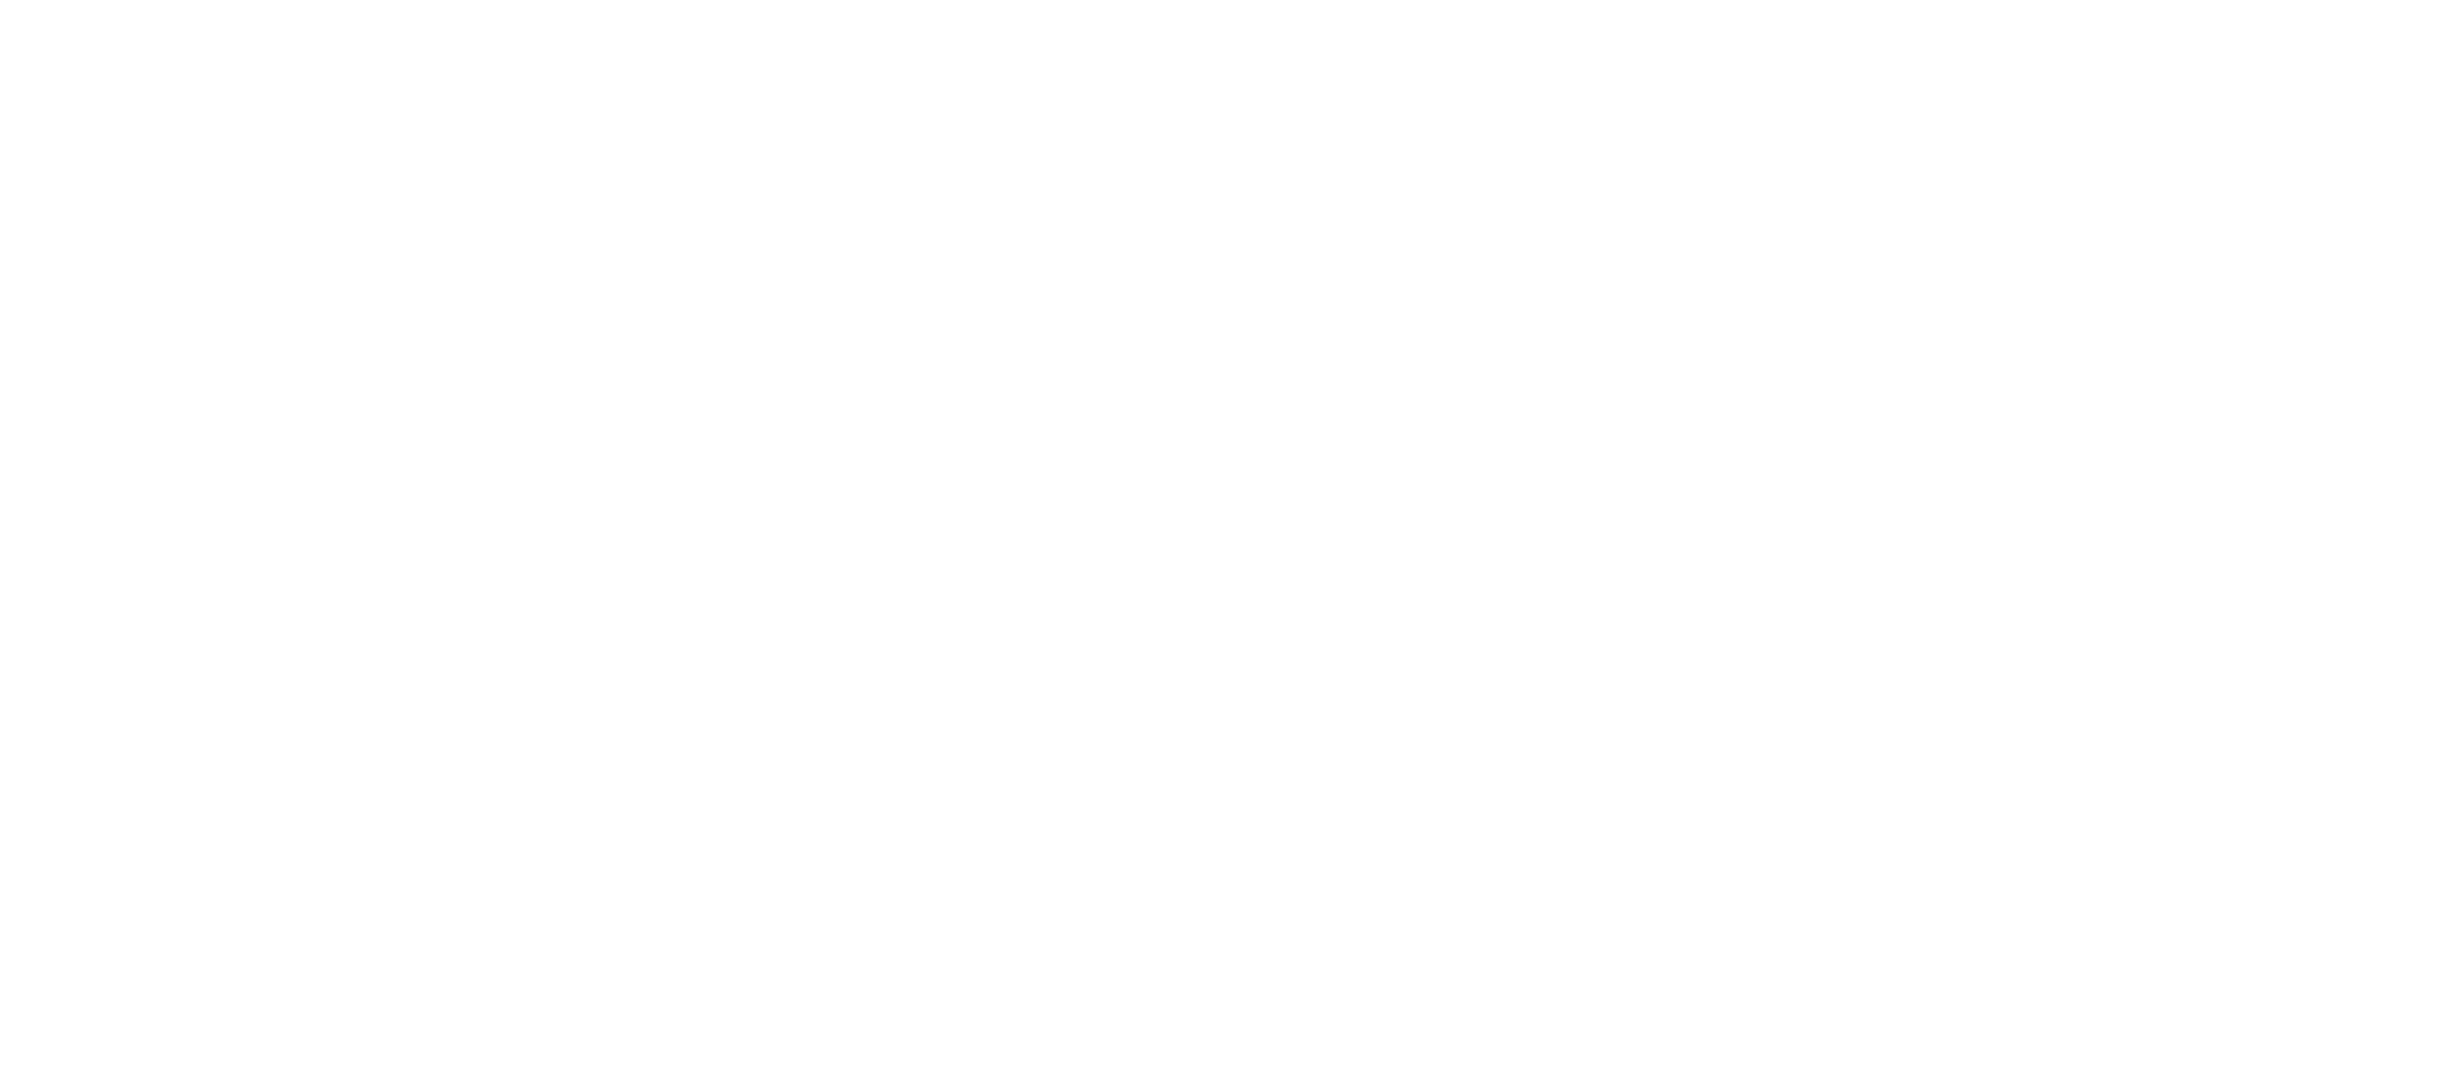 GRV Global - Africa Security Symposium 2019 - Overview & Format